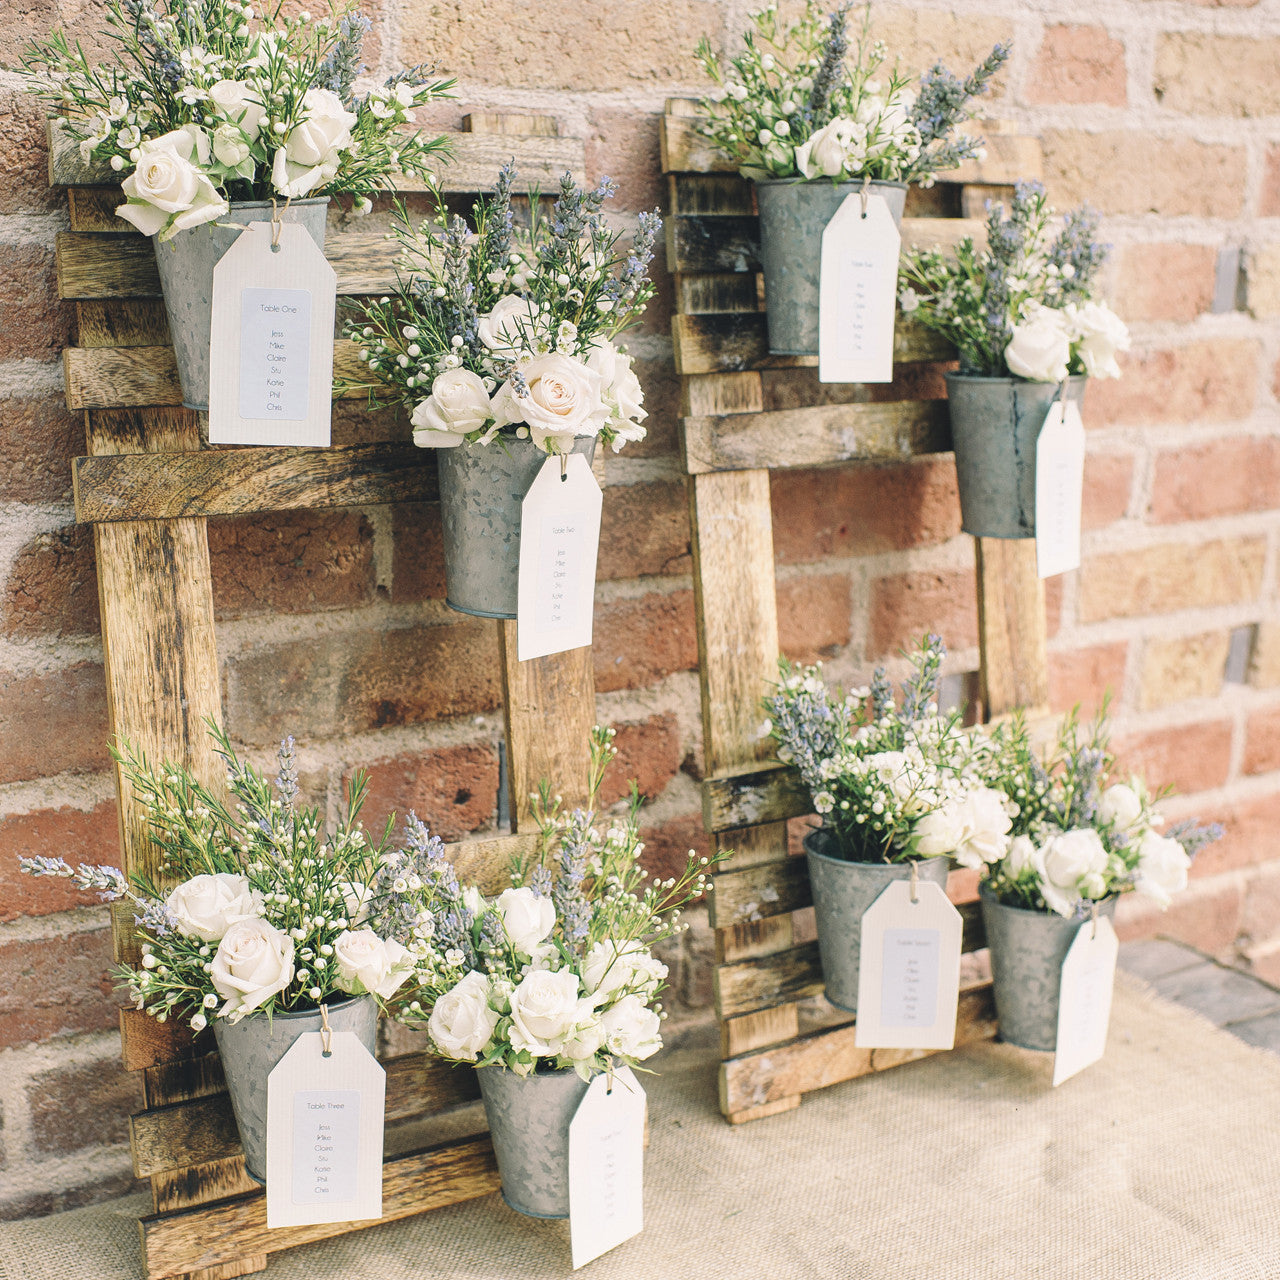 Rustic_Wedding_Table_Plan_with_flower_Po